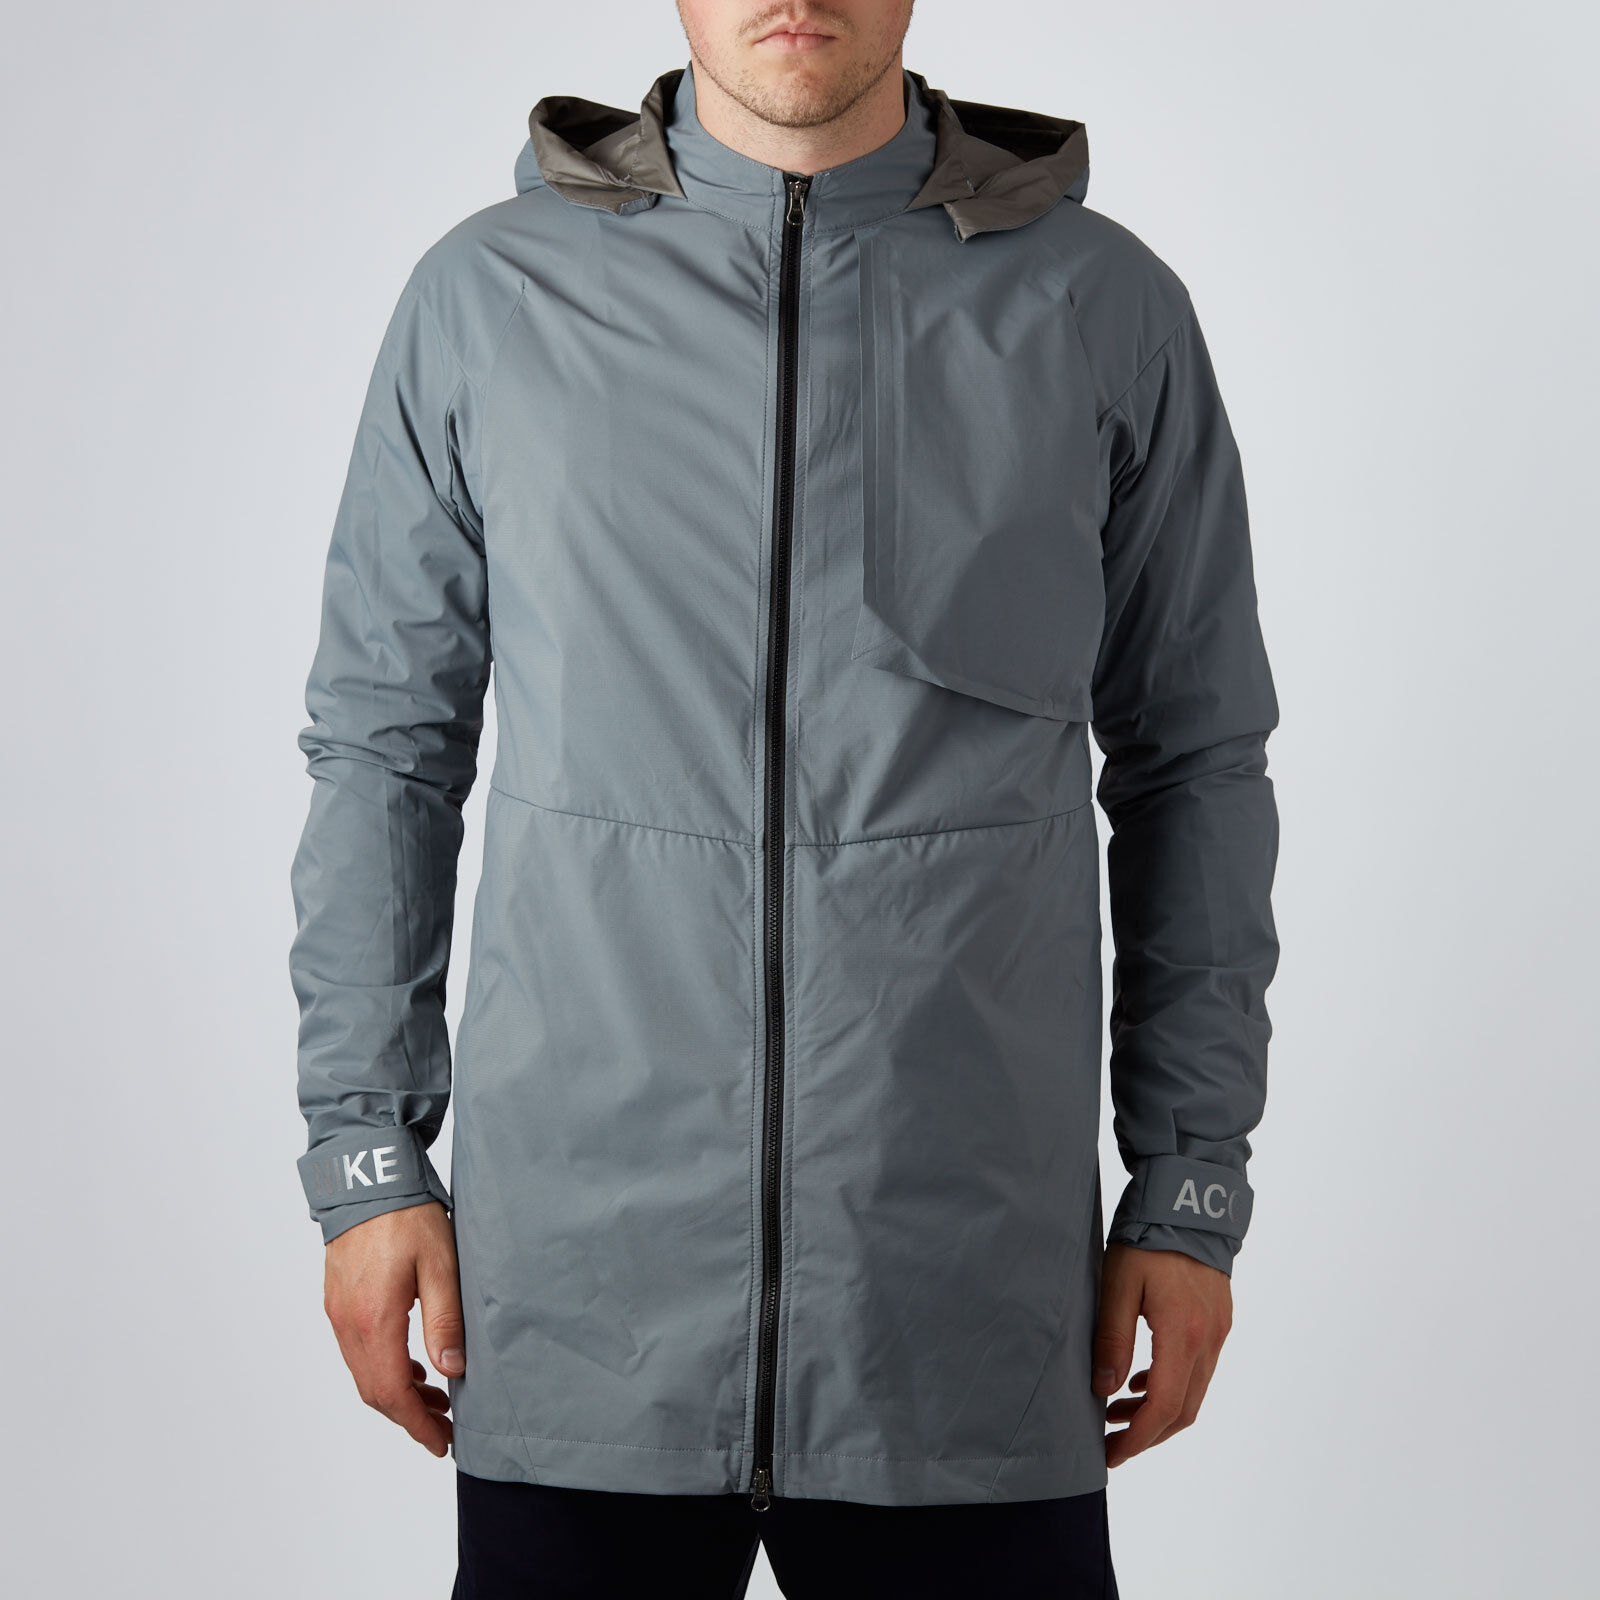 NikeLab ACG Packable Jacket Gray Mens Nike Gore